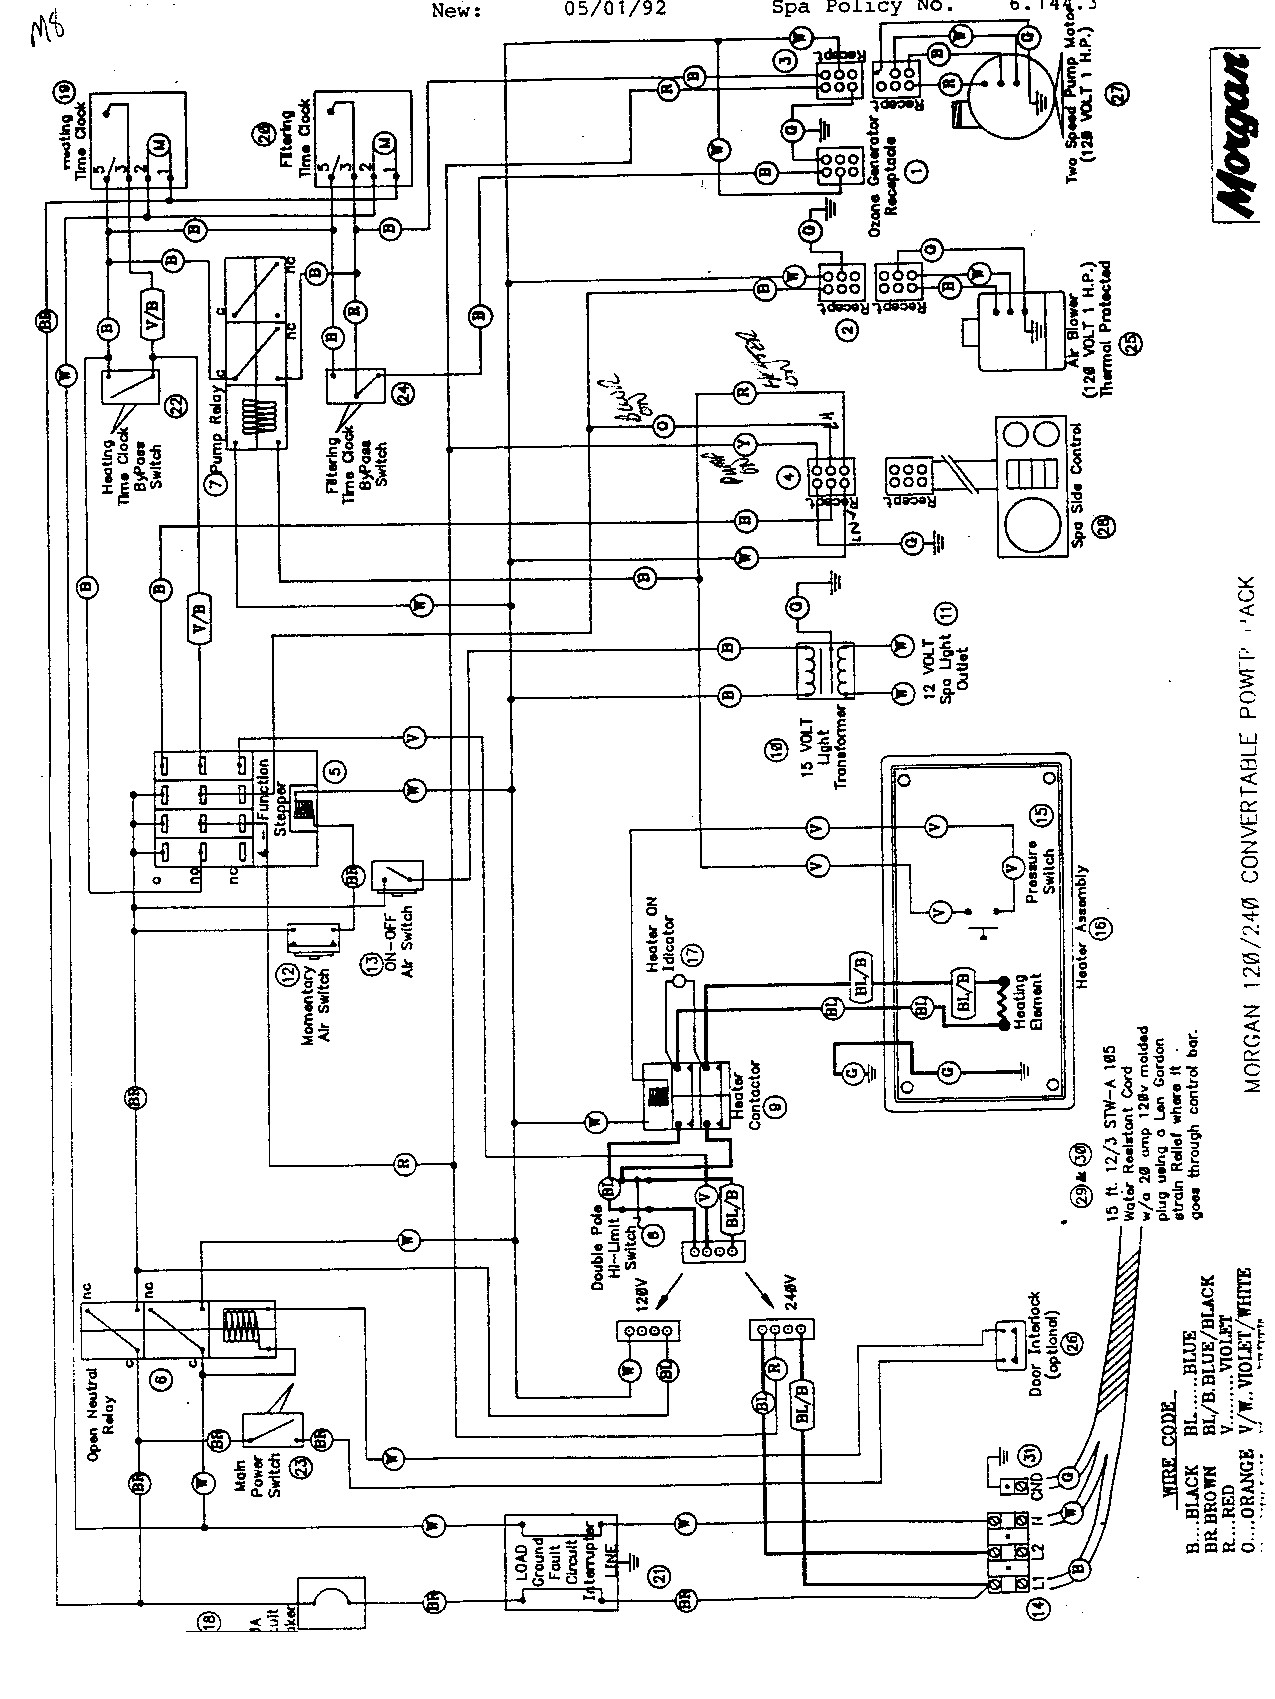 Hot Spring Spa Wiring Diagram 220 Wire Diagram Hot Springs Spa Dolgular With Tub Wiring